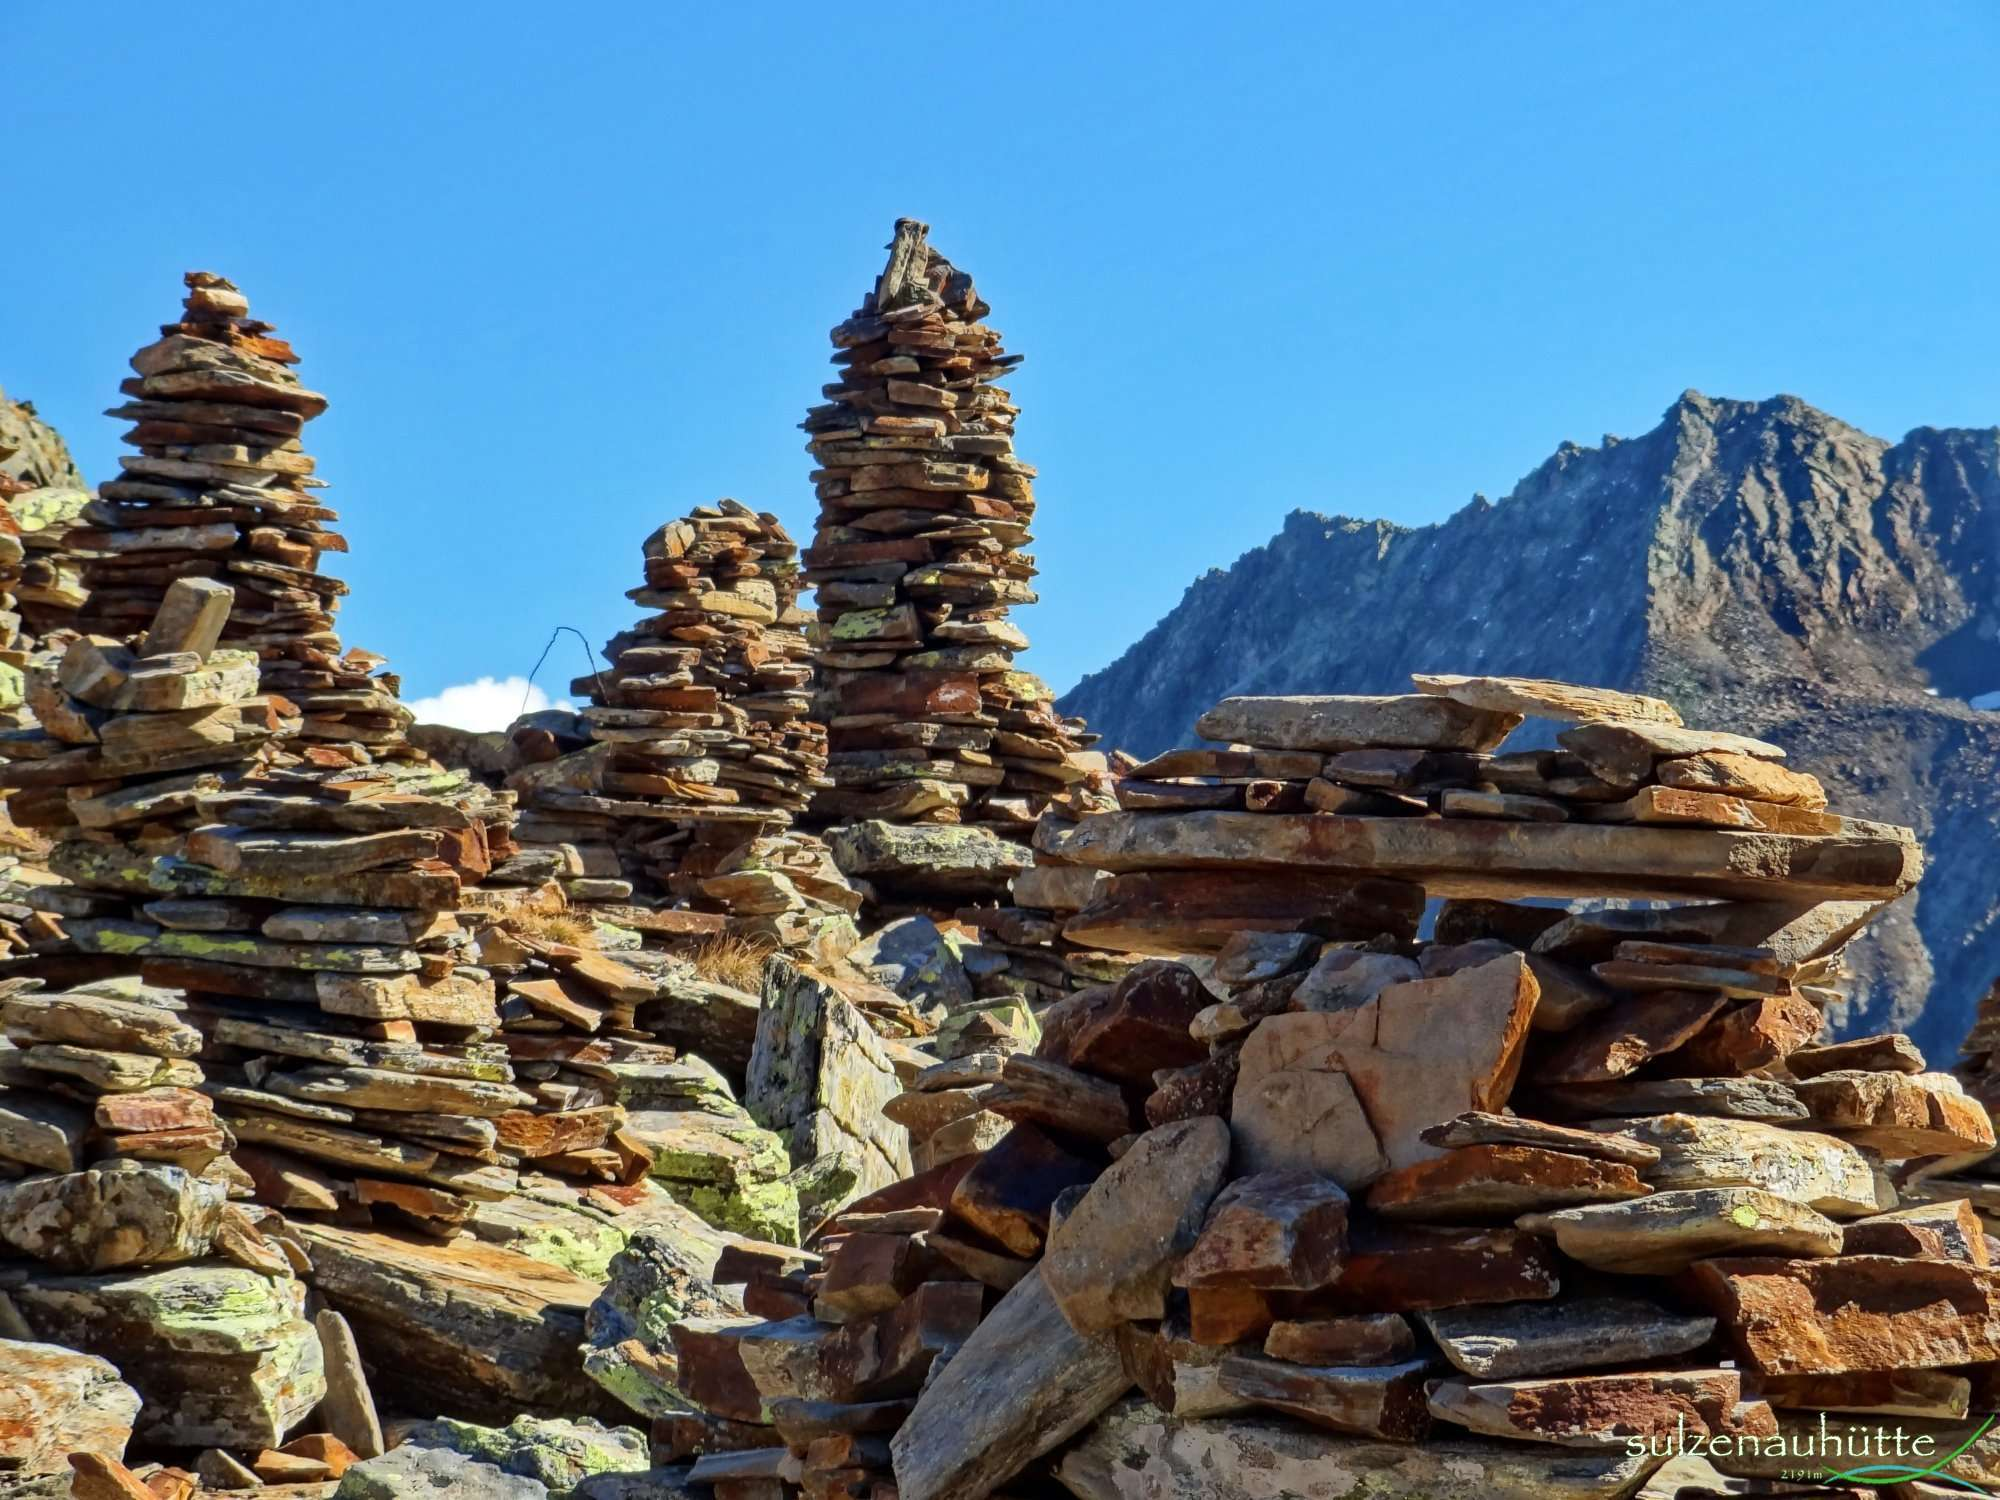 Cairns at Peiljoch - Stubai High Trail